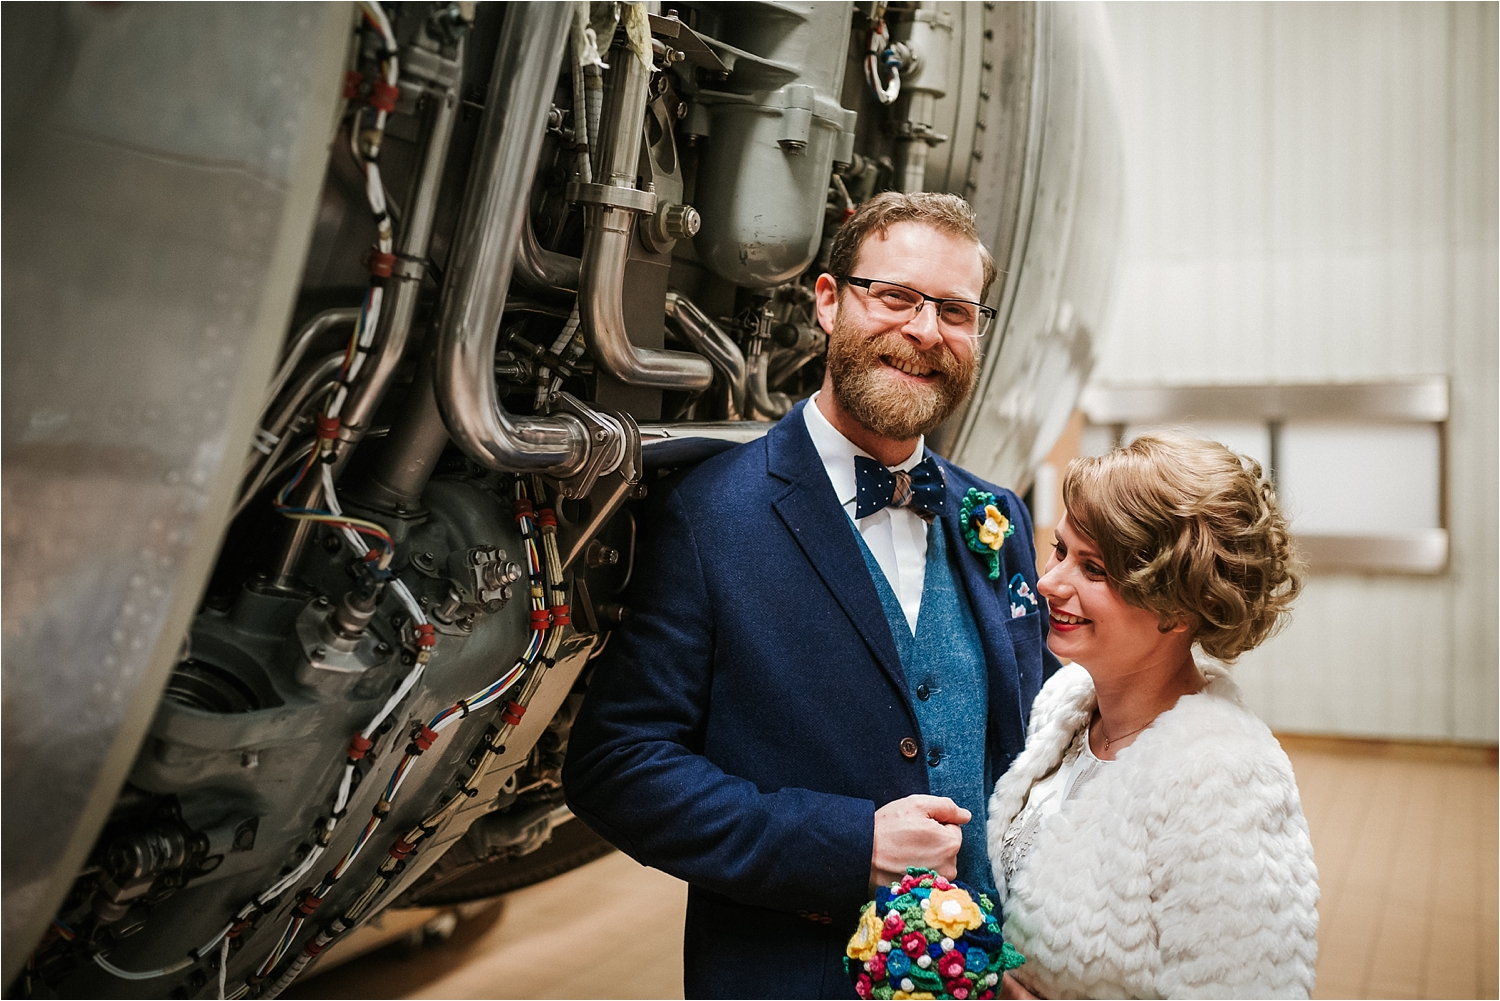 Victoria-Ben-The-West-Mill-darley-abbey-natural-relaxed-documentary-wedding-photography-photographer-Derby-Nottingham-Derbyshire-Nottinghamshire-Leicestershire-Lincolnshire-East-Midlands_0164.jpg